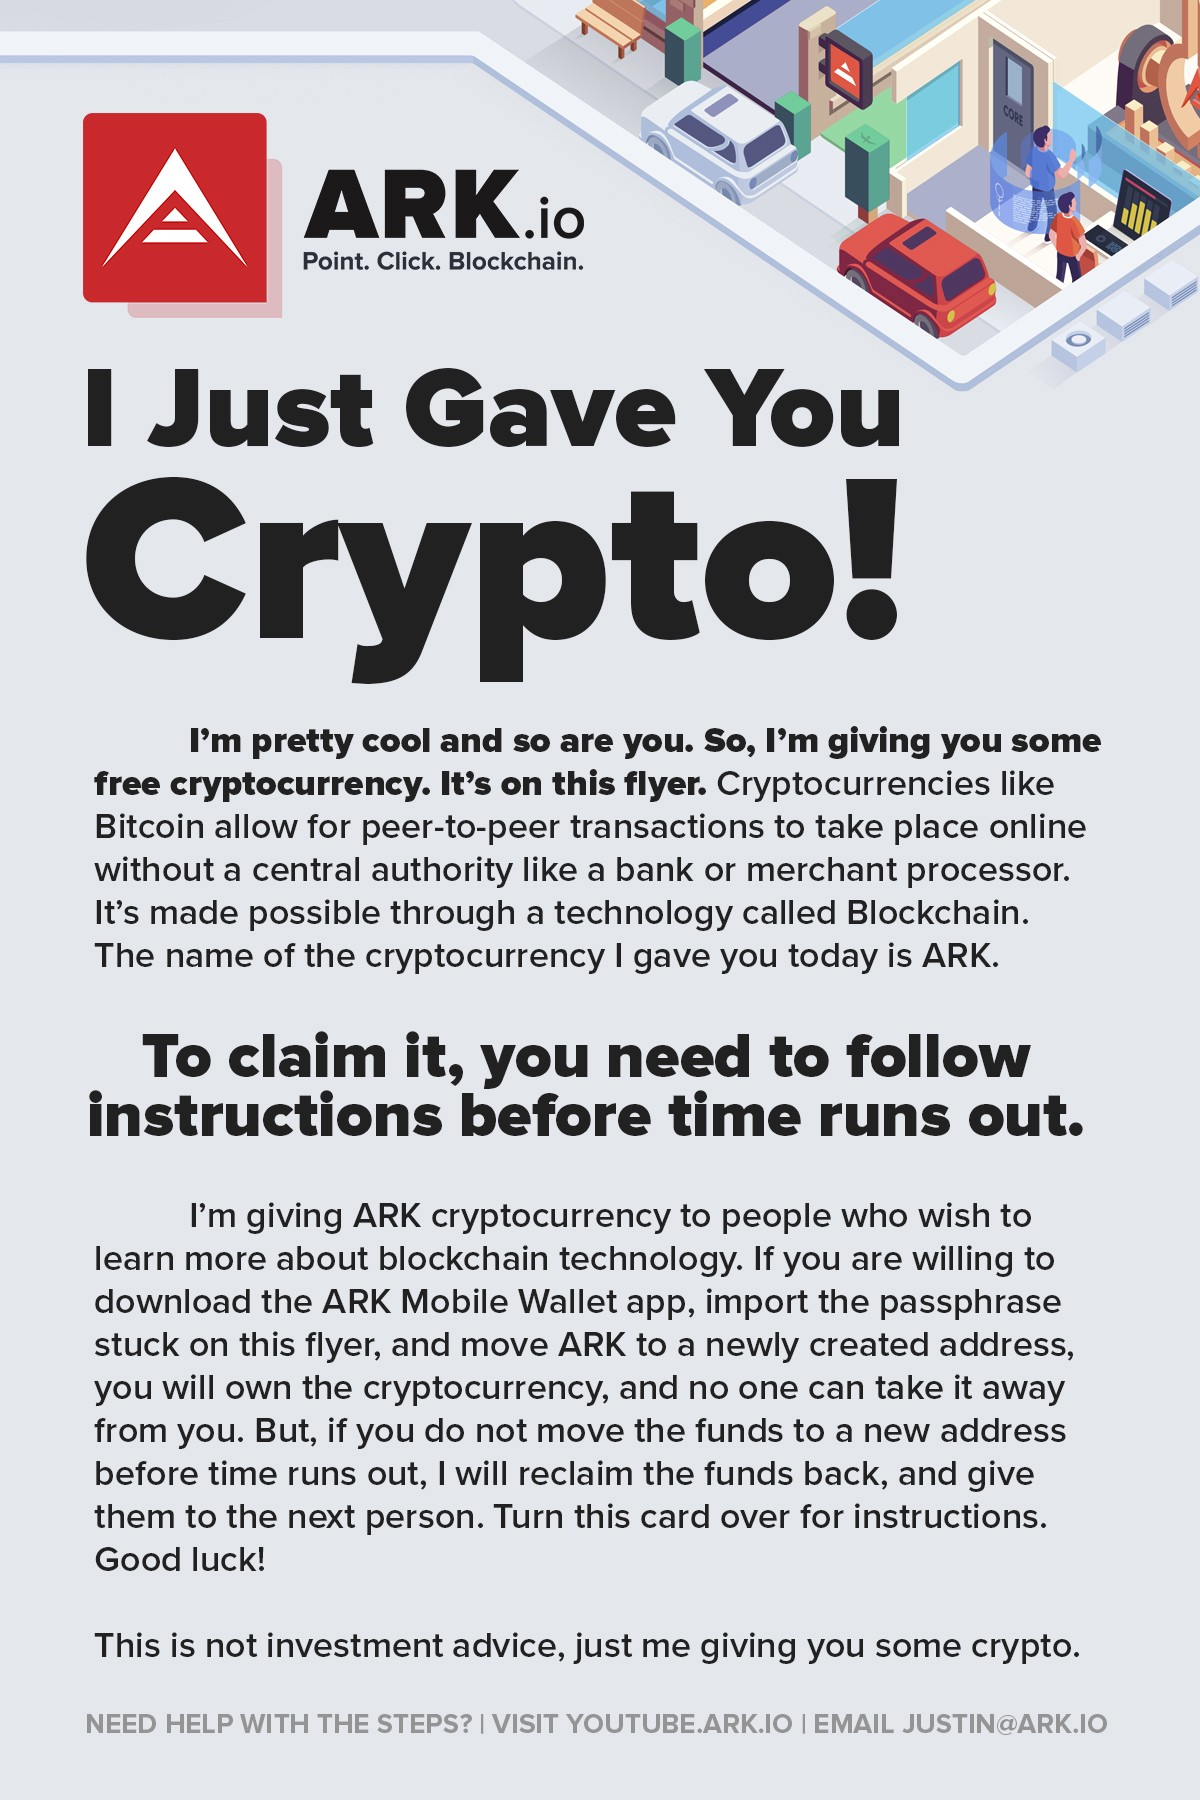 Flyer front design. No crypto is being offered to the reader of this article.